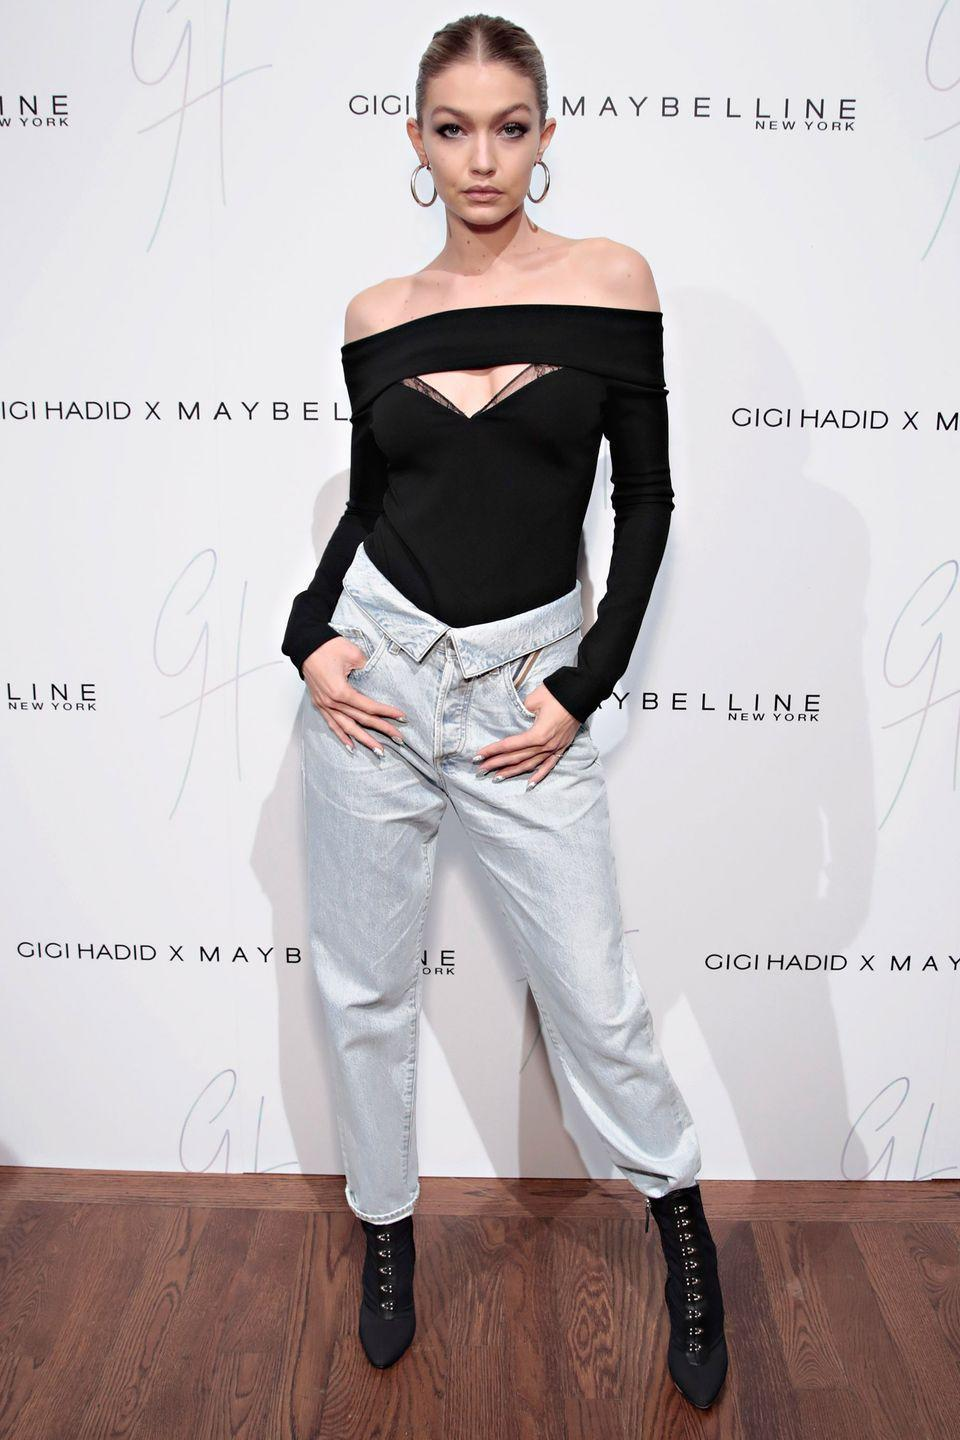 <p>In Jean Atelier body suit and jeans, Giuseppe Zanotti booties, and Luv AJ hoop earrings at the Gigi Hadid x Maybelline New York International Launch Party in NYC.</p>